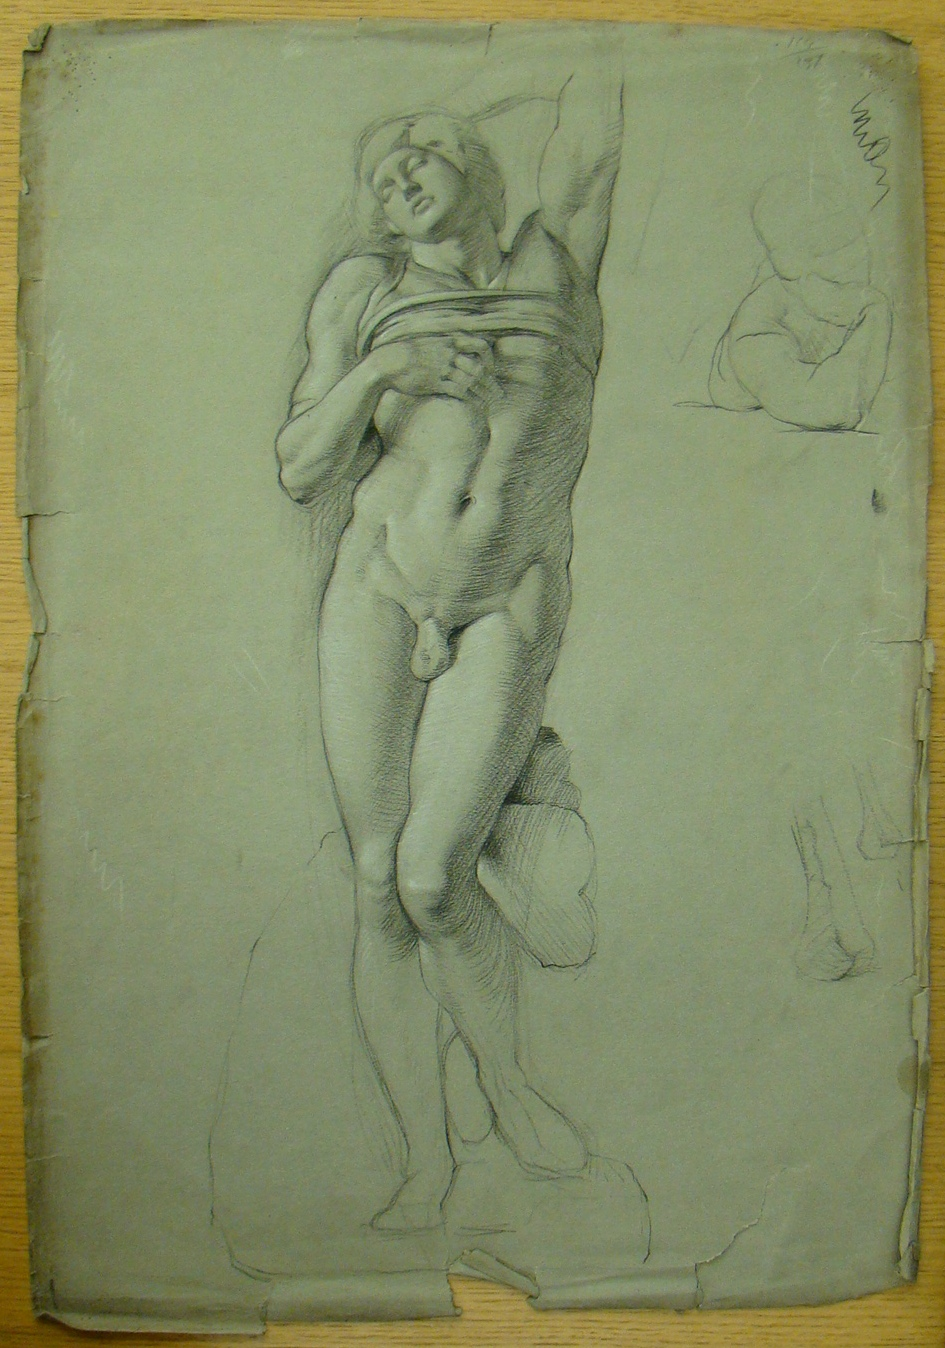 Gerard Murphy's drawing of GSA's cast of Michelangelo's Slave